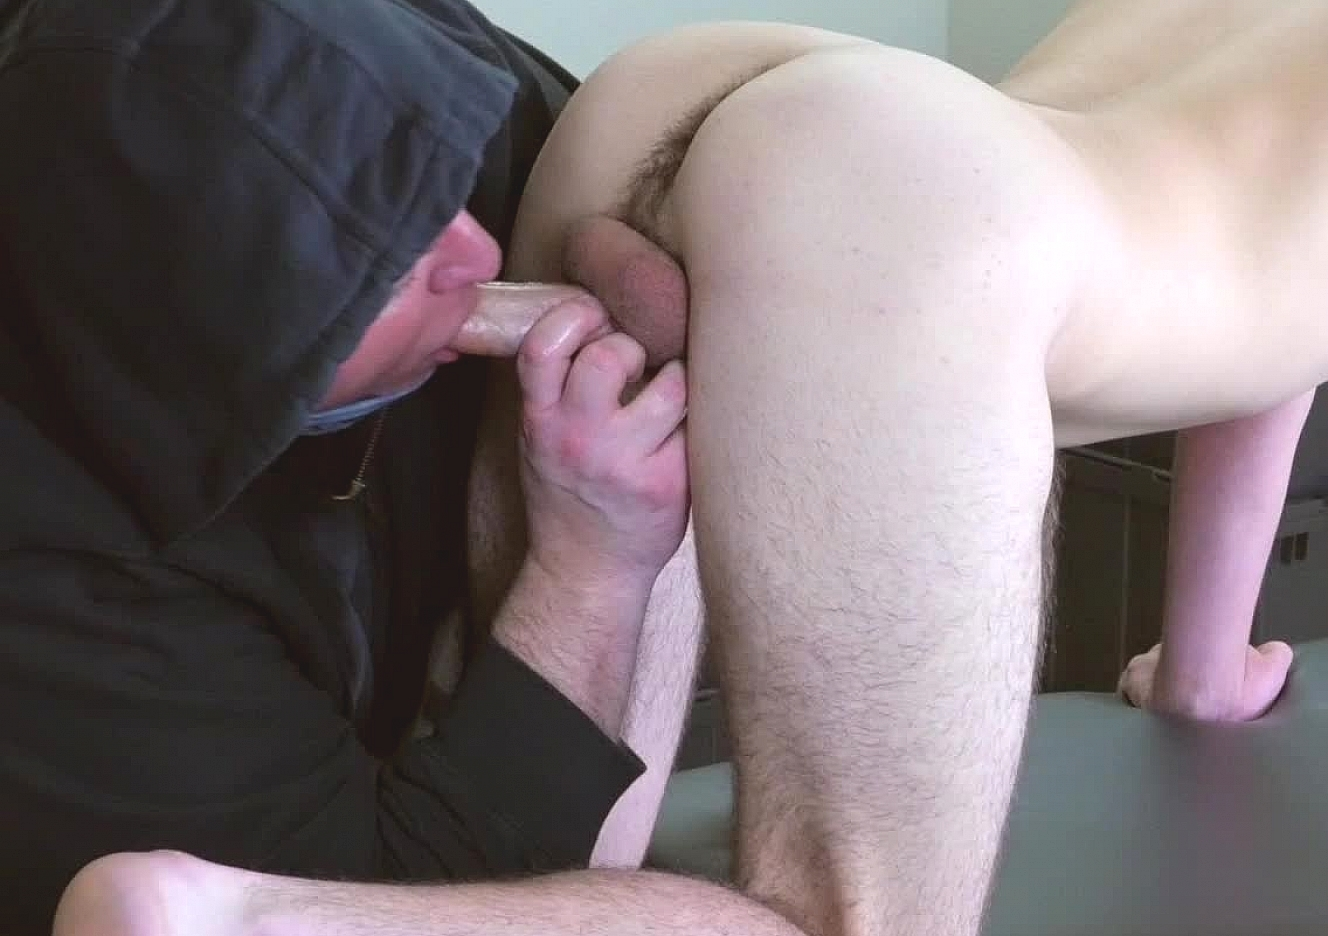 content/170420101-parkers-first-gay-blowjob/0.jpg